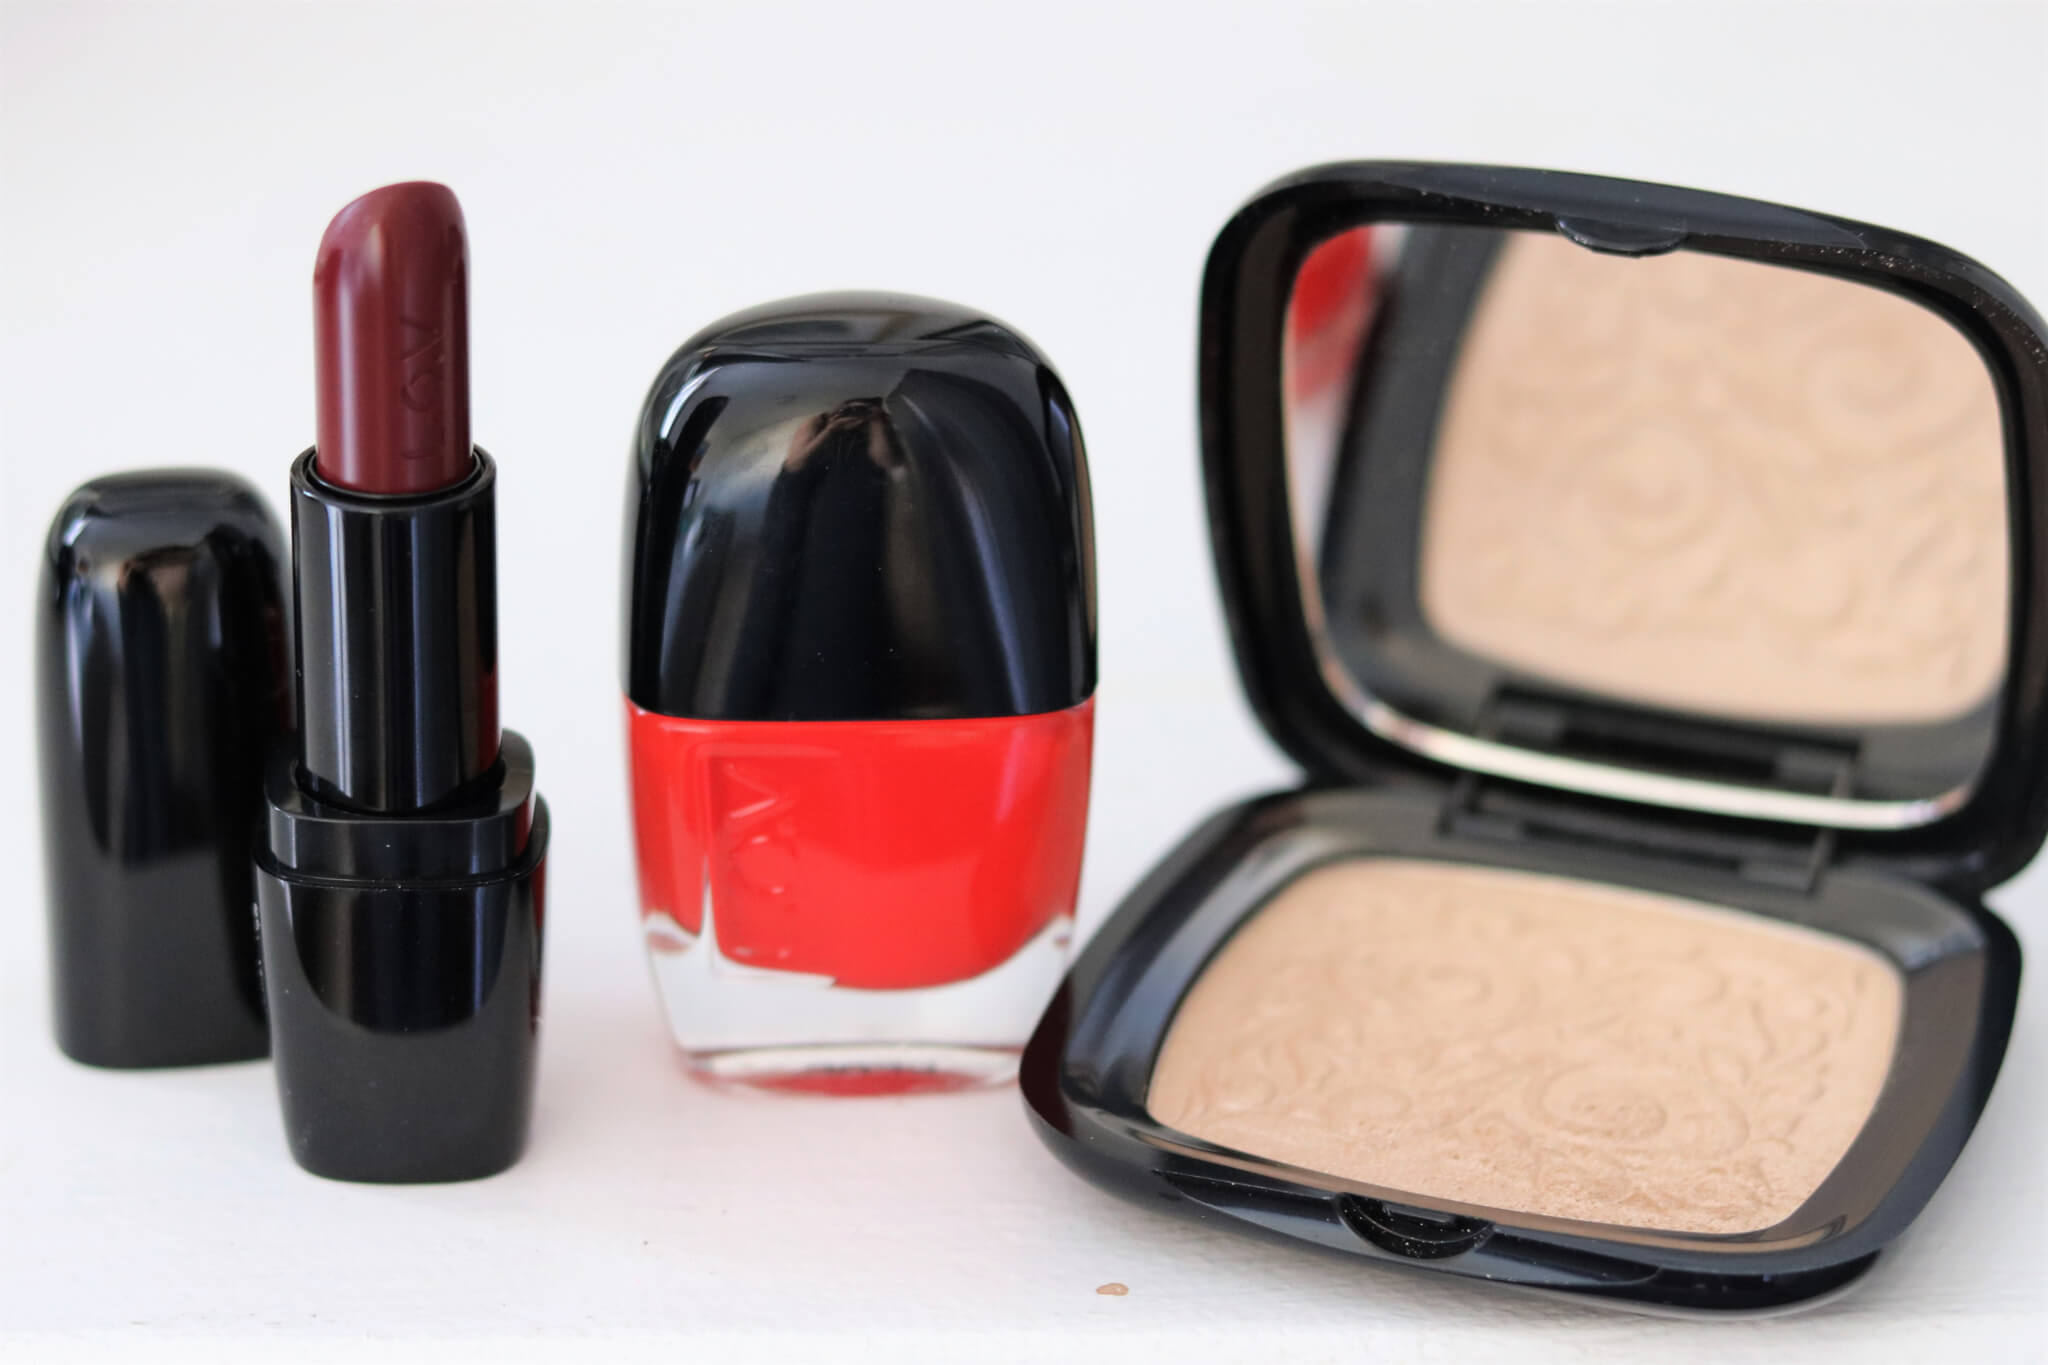 L.O.V Make Review: Highlighter, Lipstick & Nail Lacquer